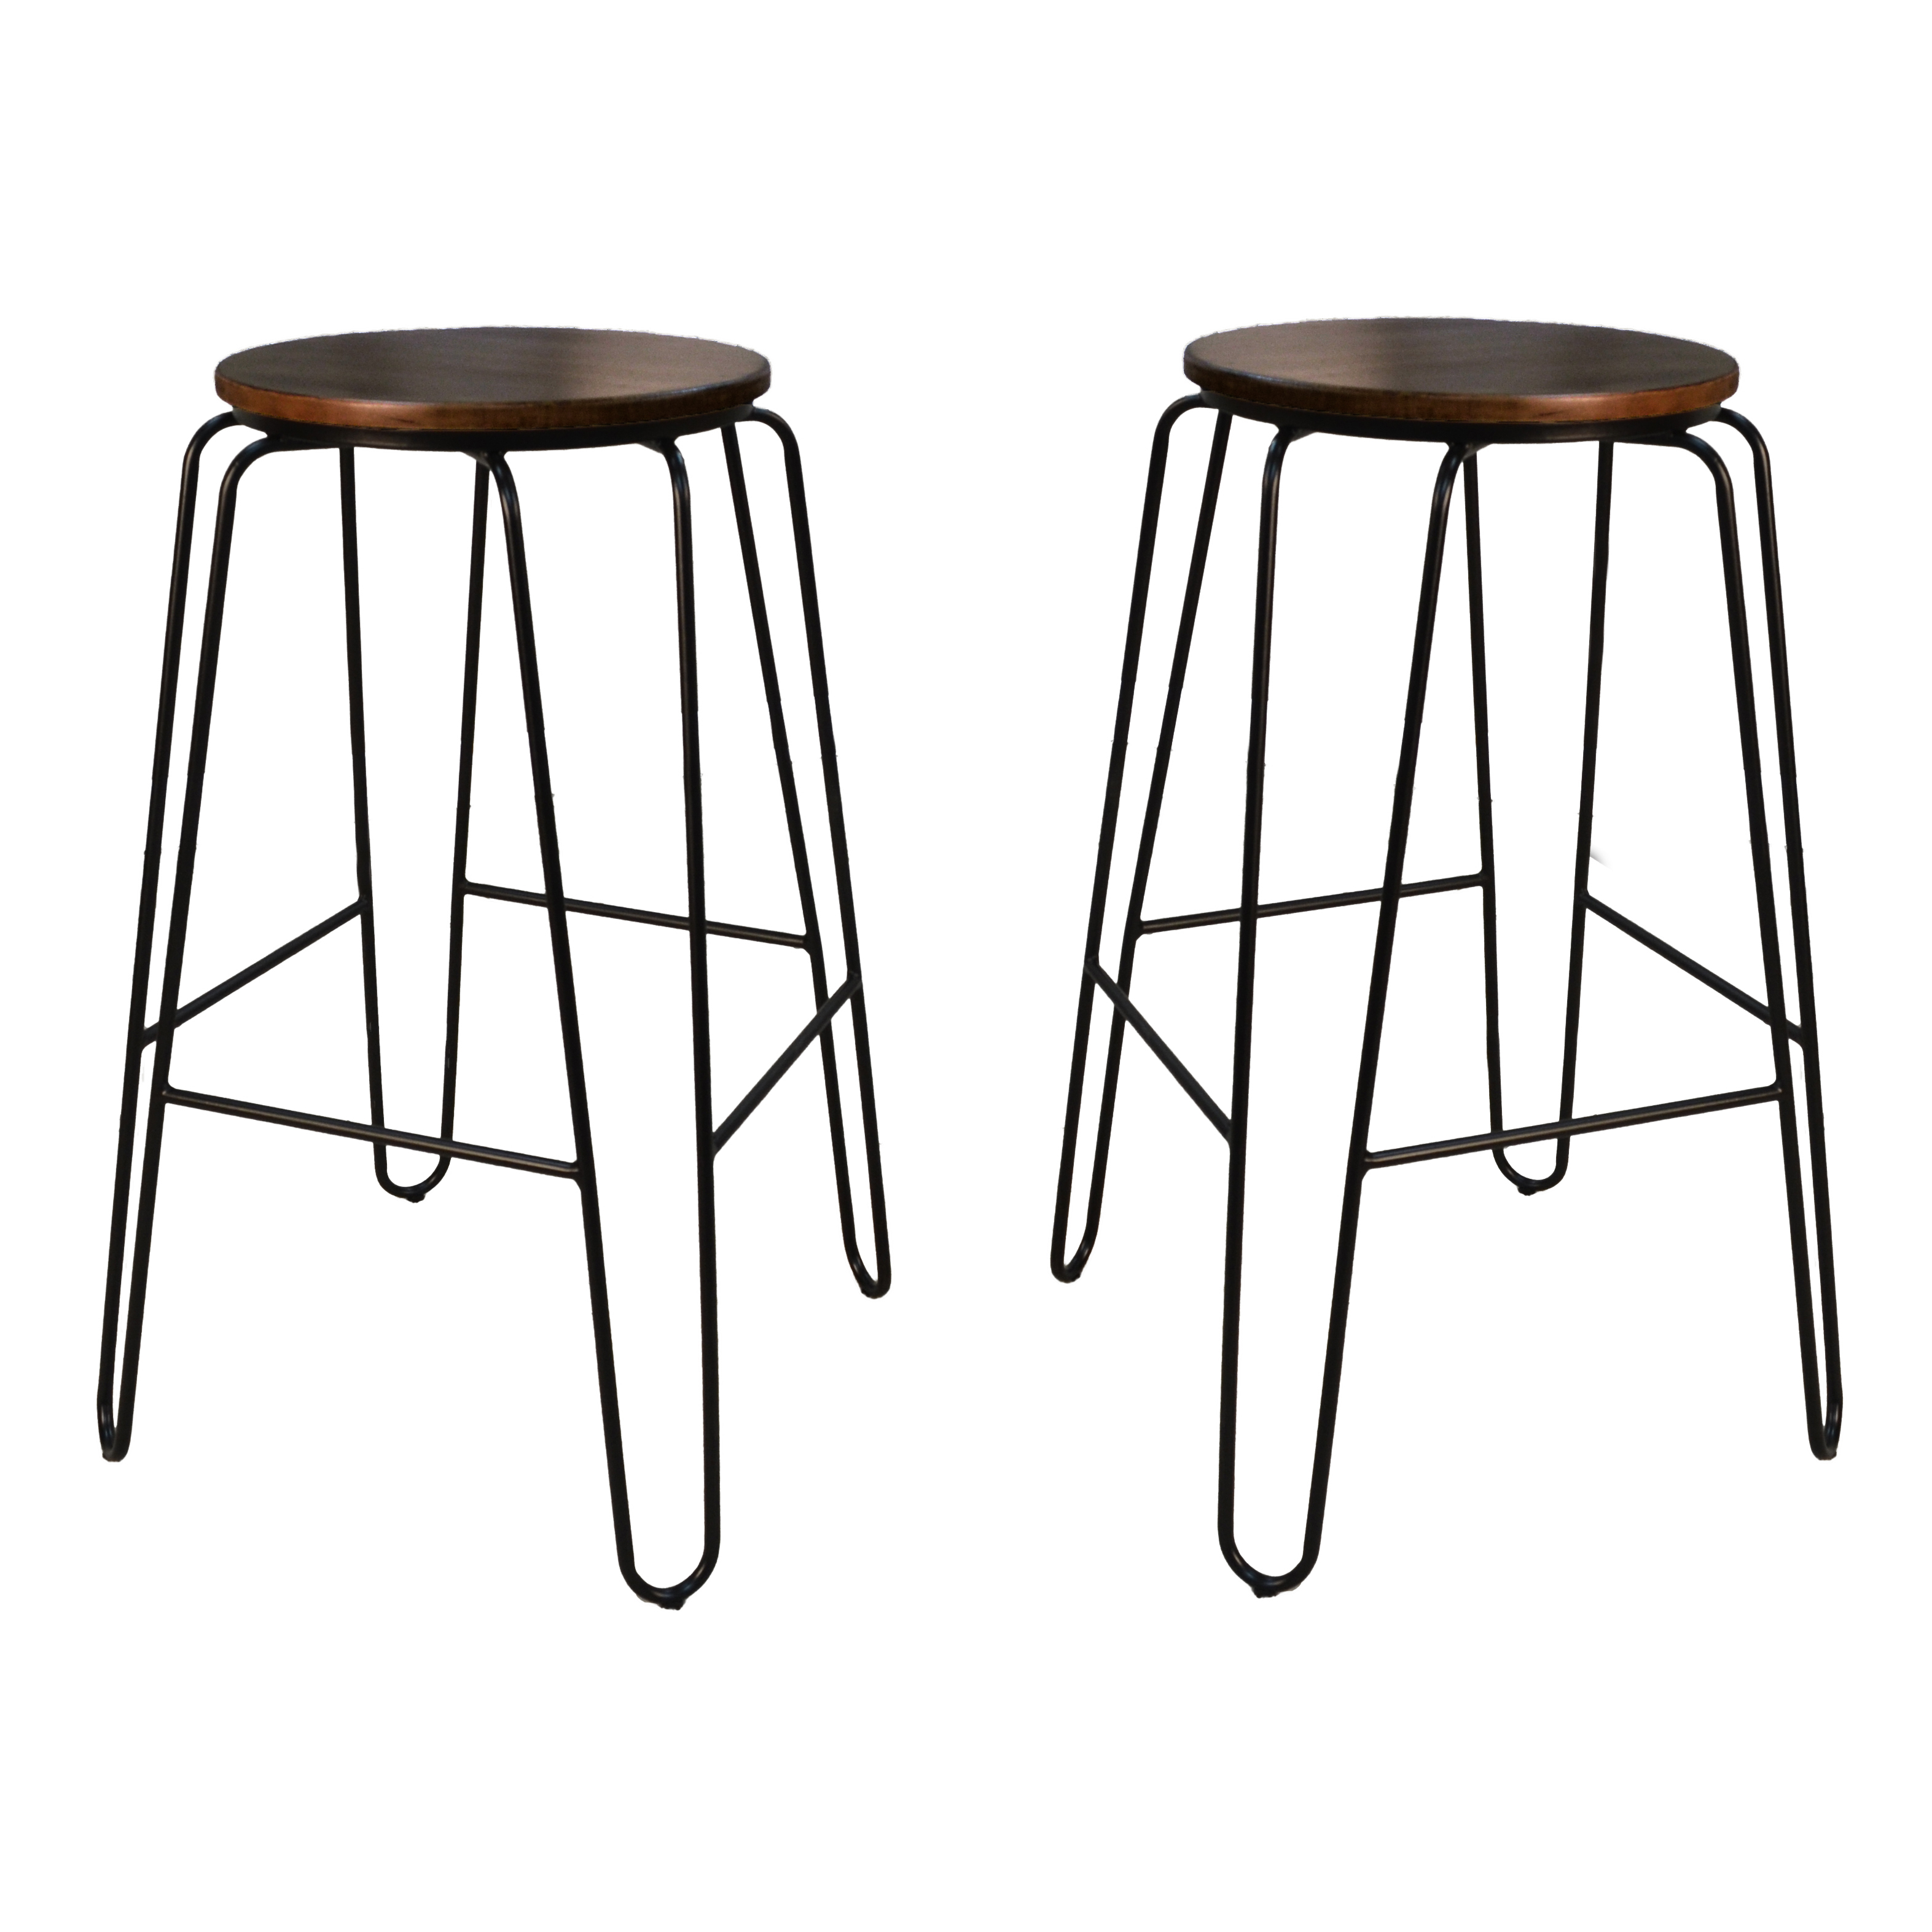 "Ethan 29"" Bar Stool Set of 2, Elm/Black"